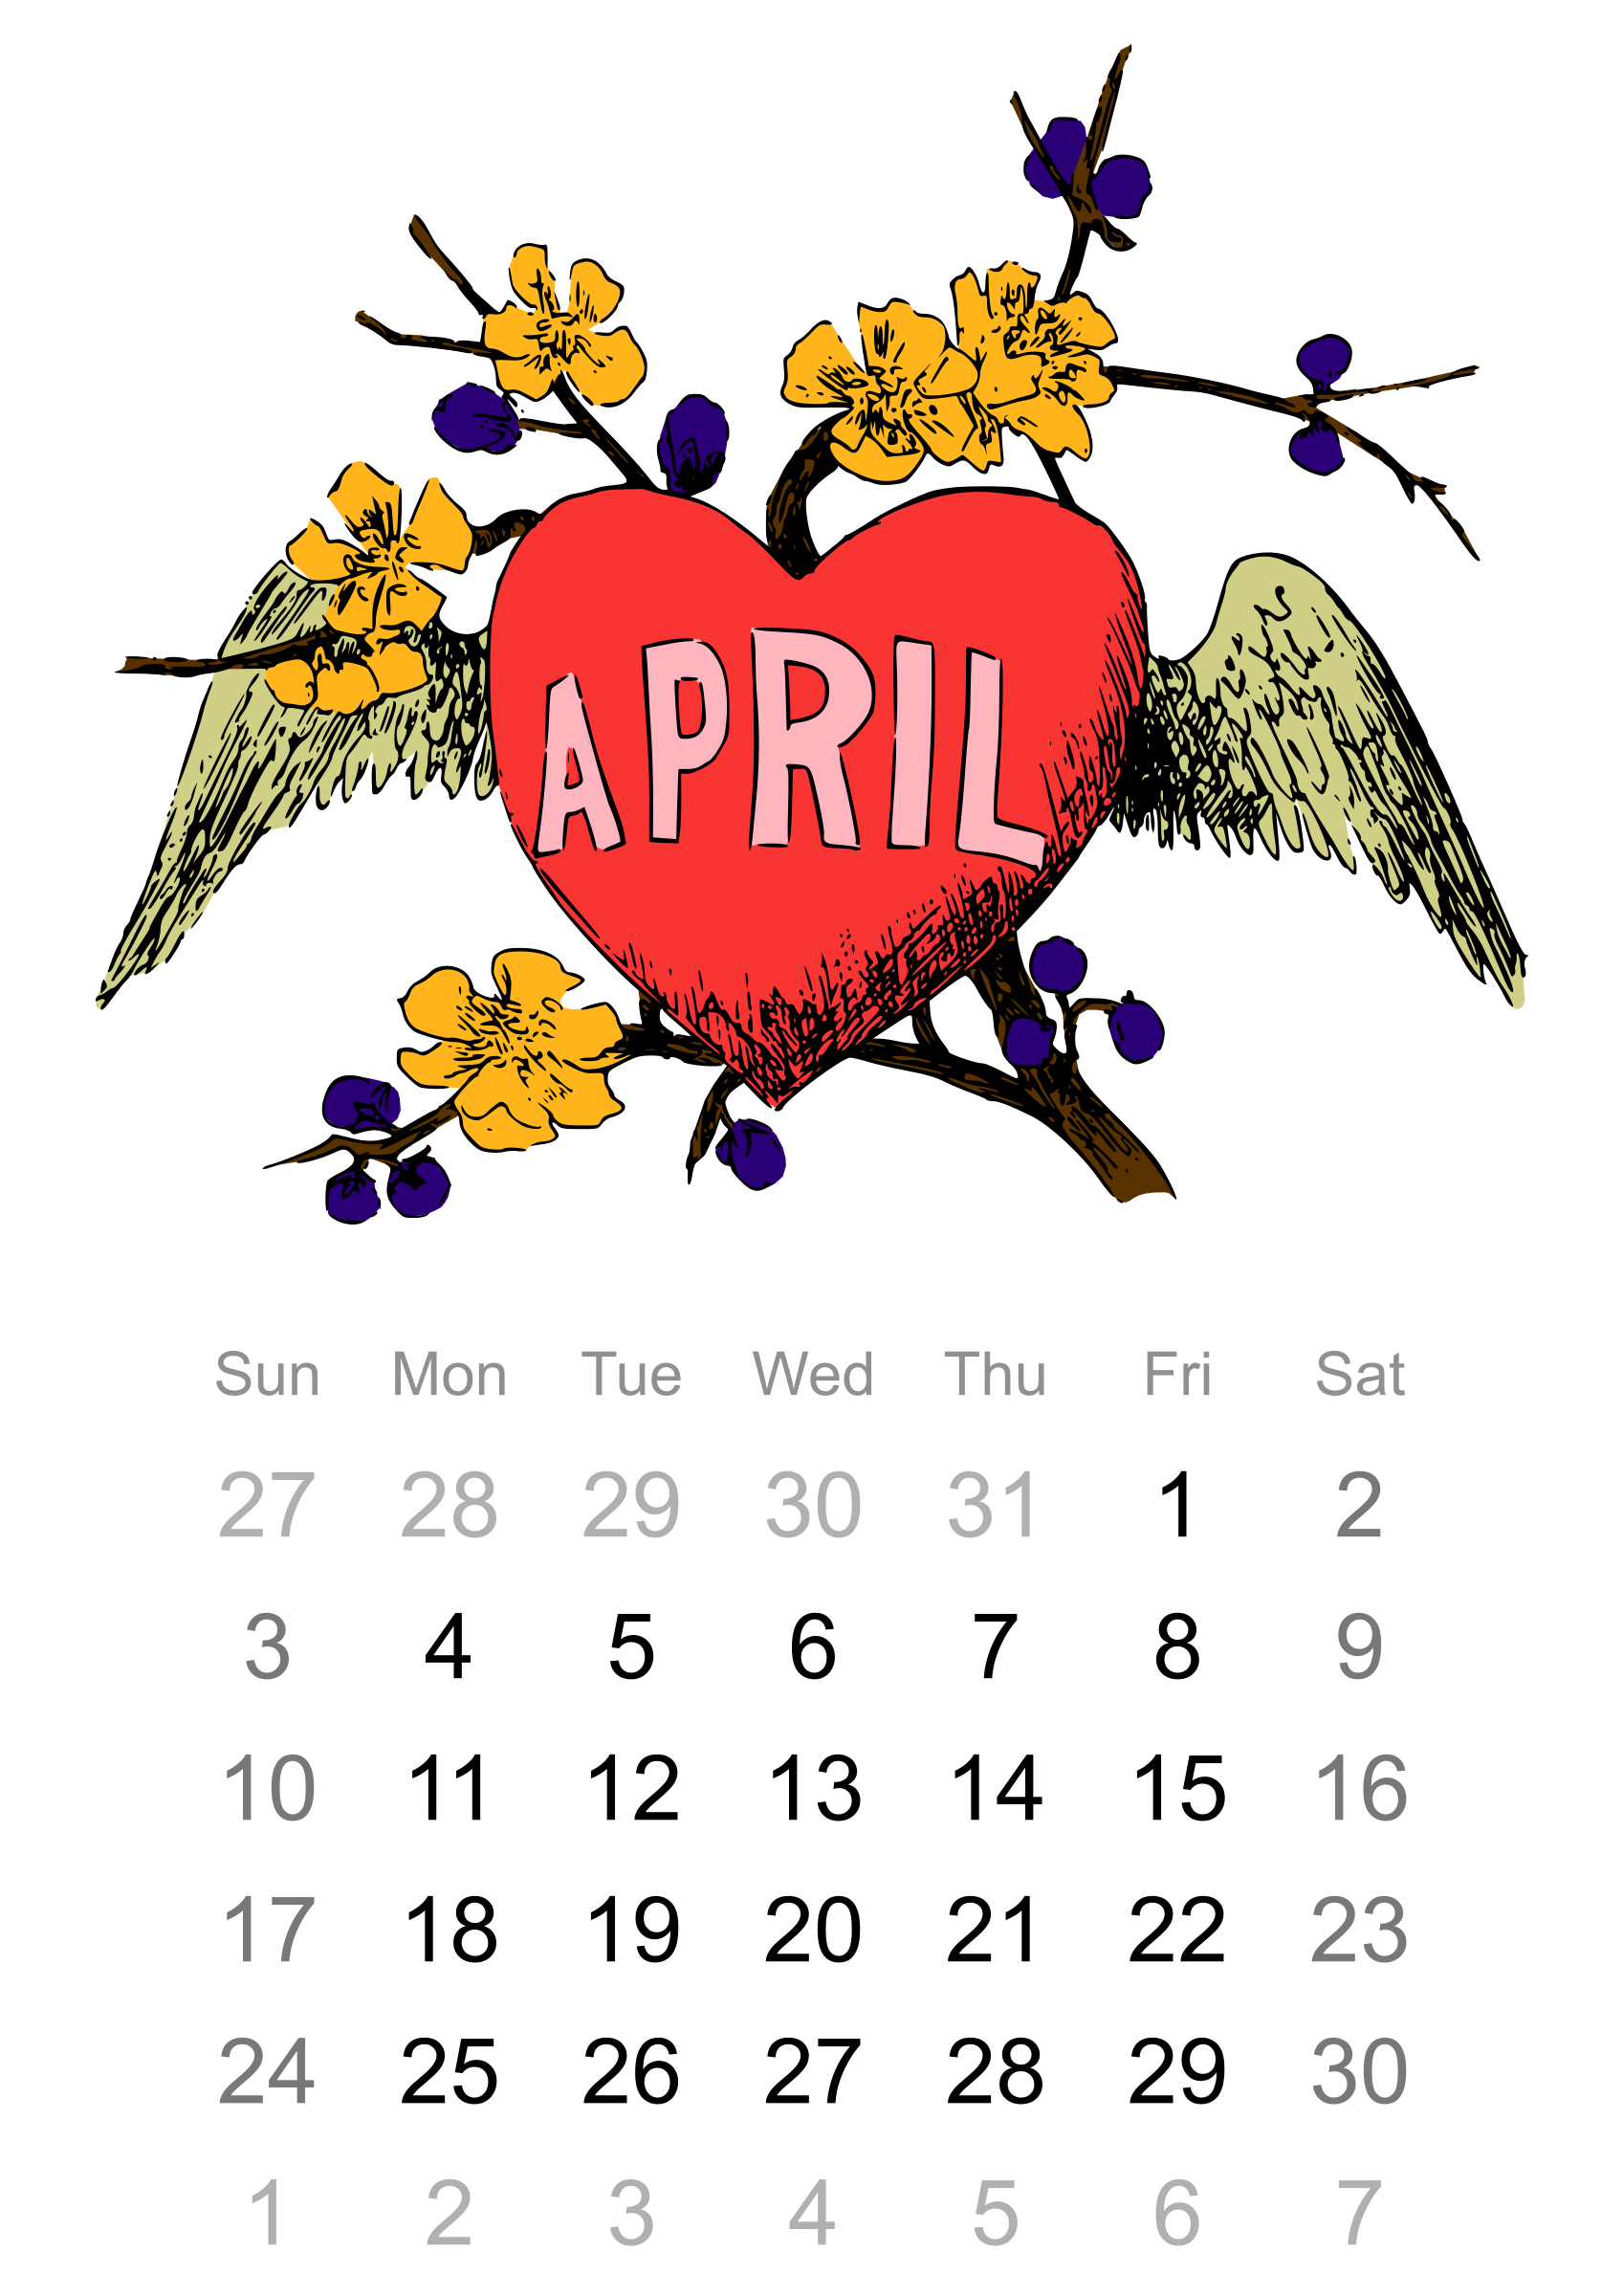 2016 monthly calendar clipart image black and white stock Clipart - 2016 April calendar image black and white stock